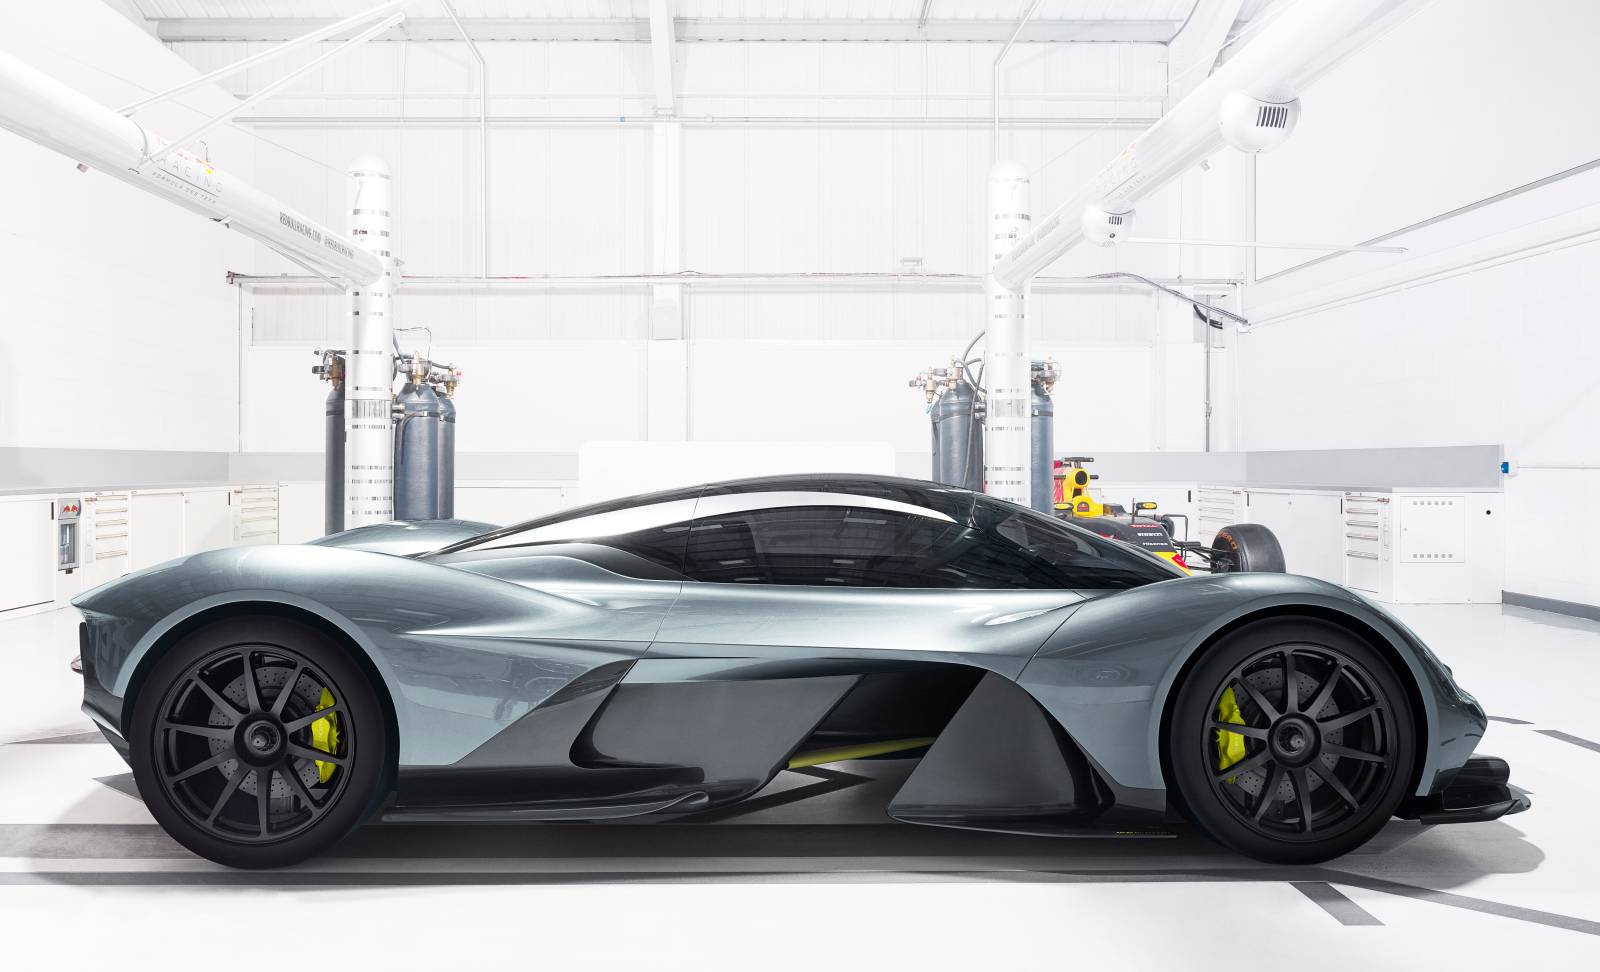 Weltpremiere Aston Martin Red Bull 010 AM-RB 001